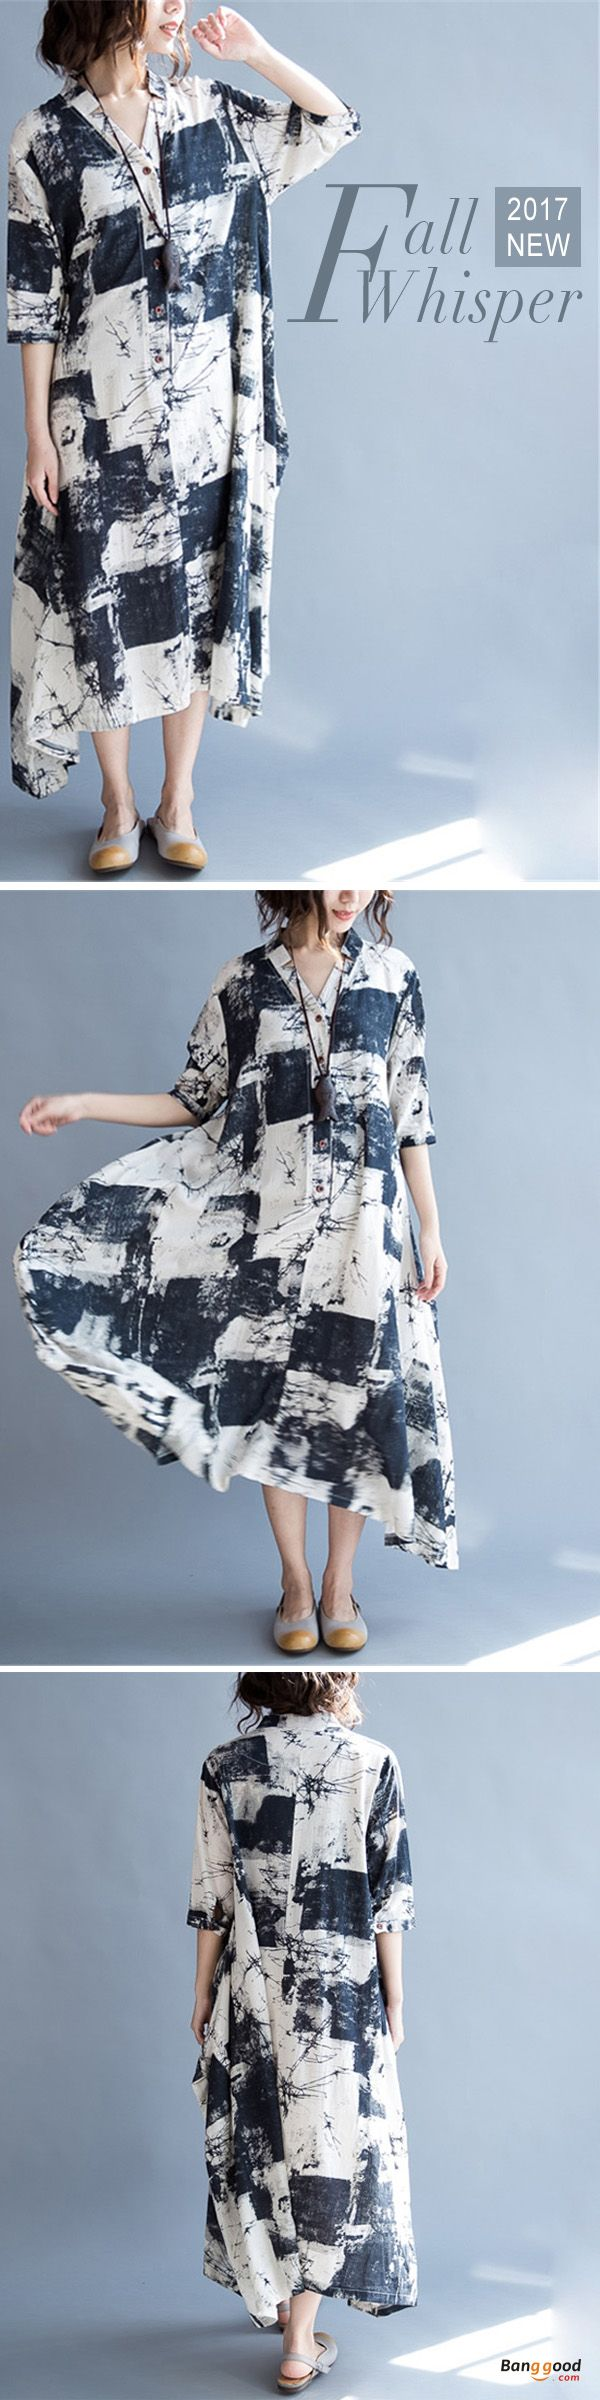 US$26.59+Free shipping. Size(US): L~5XL. Material: Cotton. Home or out, love this vintage and casual dress. Women Dresses, Long Dresses, Dresses Casual, Dresses for Teens, Summer Dresses, Summer Outfits, Retro Fashion.